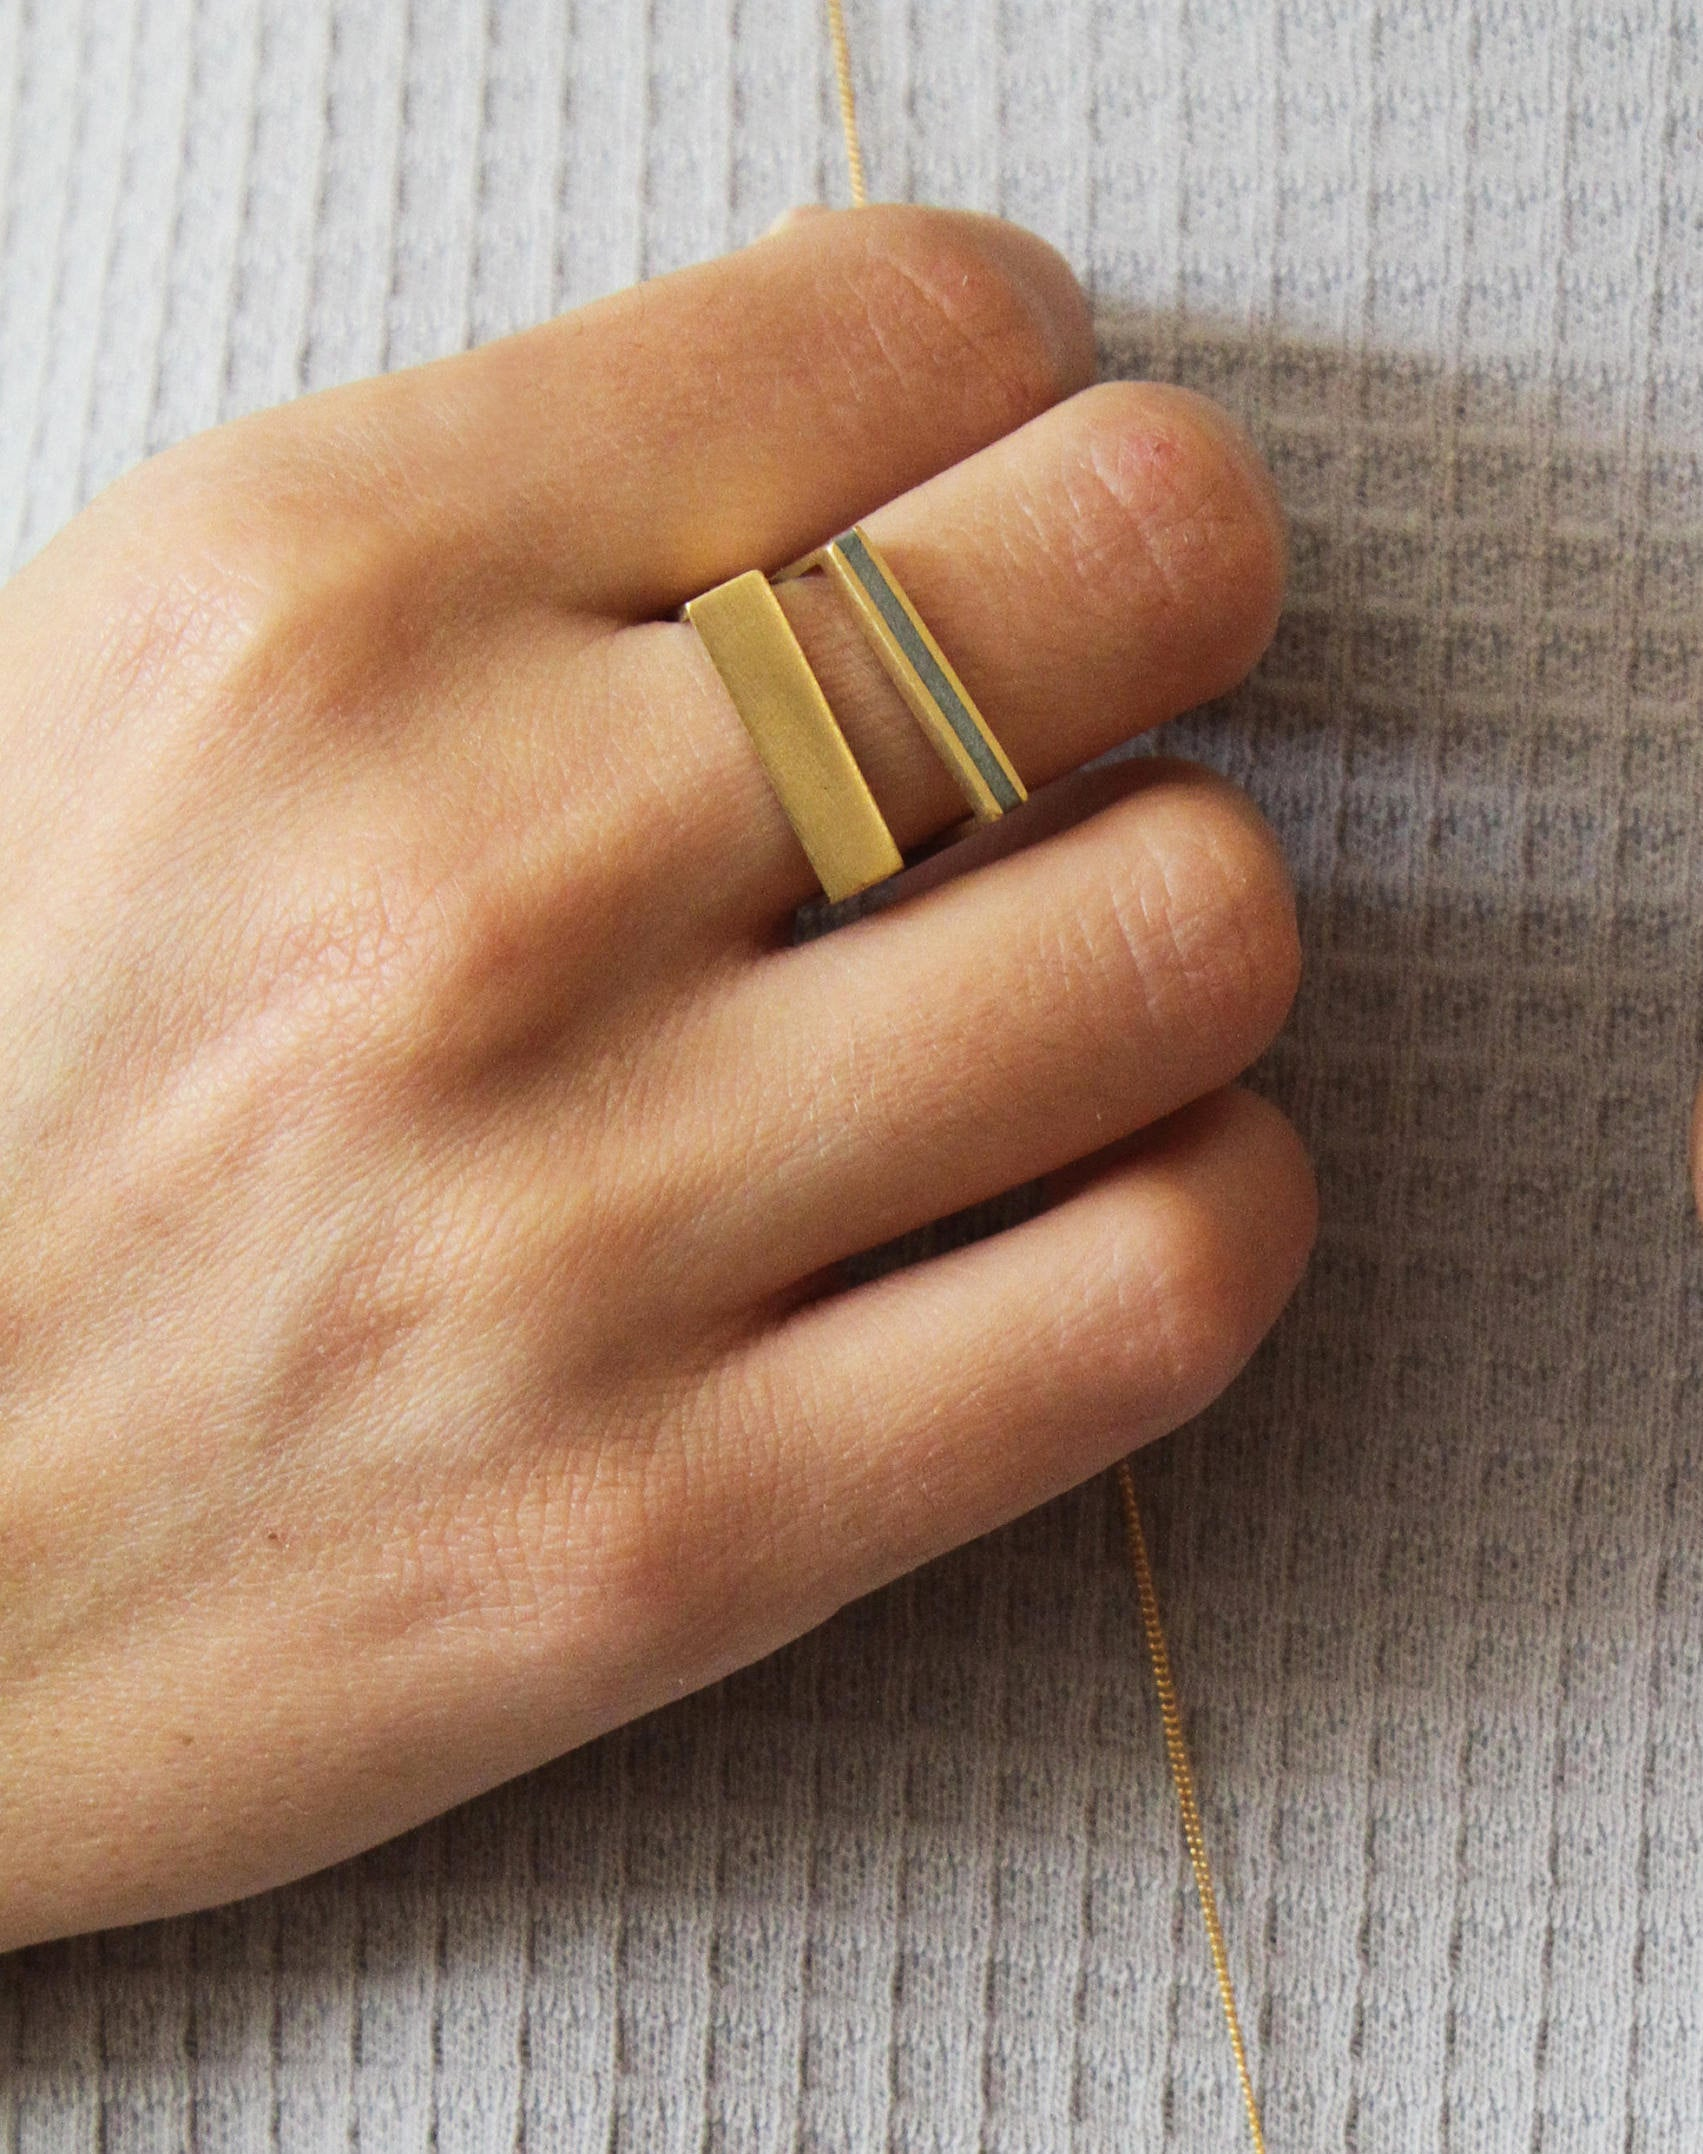 Gold concrete narrow stripe Ring, Geometric Concrete Ring, Frame Ring, Delicate bar Ring, modern line ring, Minimalist Ring, rectangle ring - hs